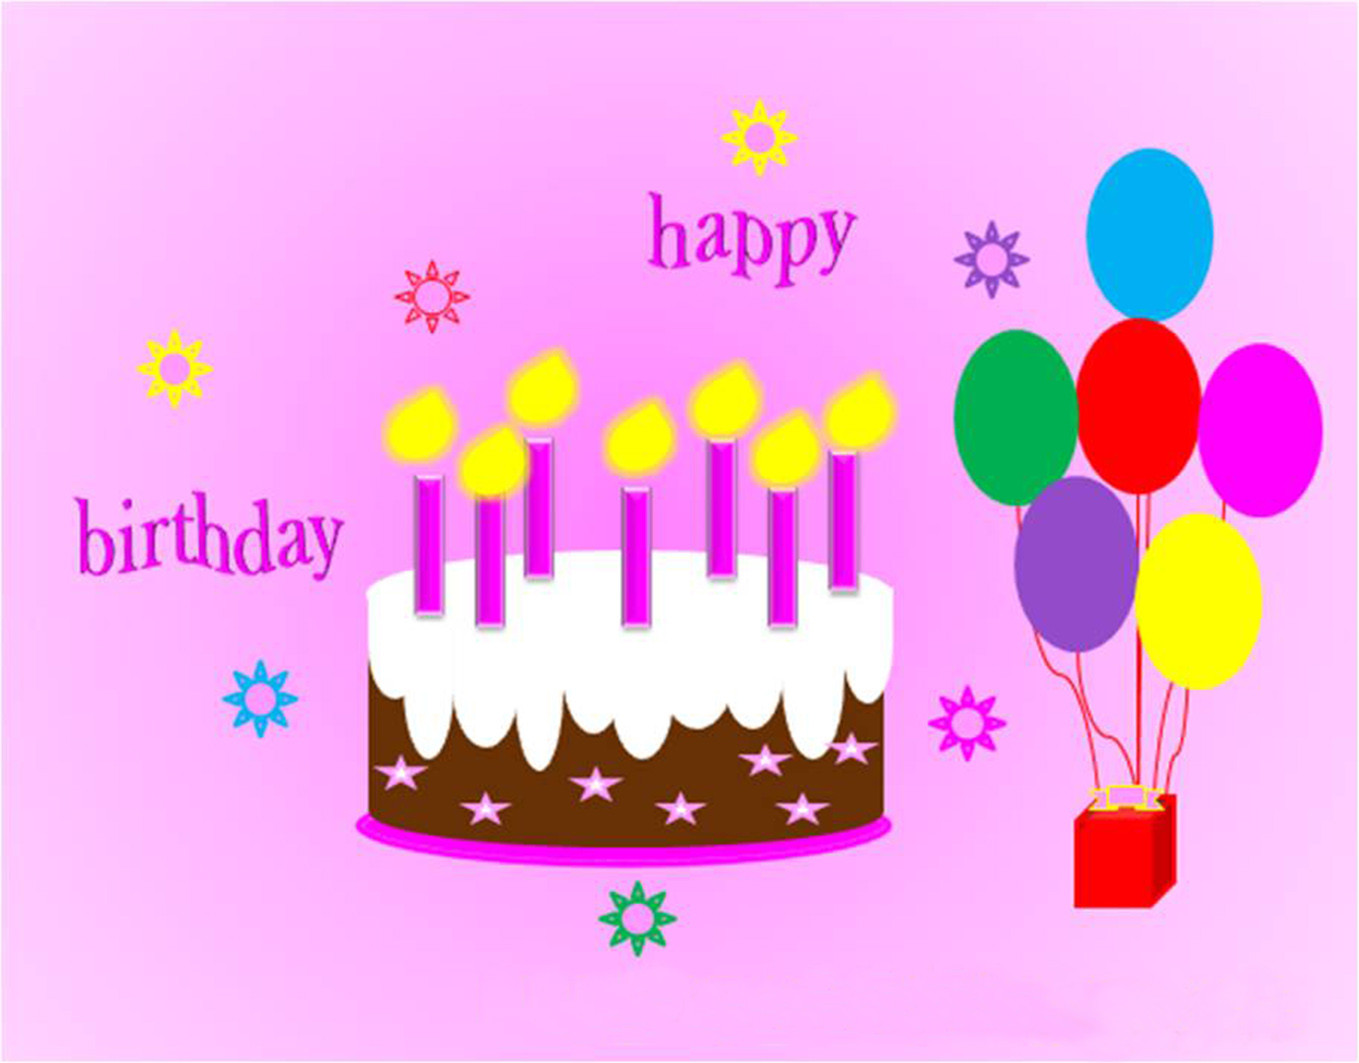 The Best Ideas for Free Electronic Birthday Cards - Home, Family, Style and Art Ideas